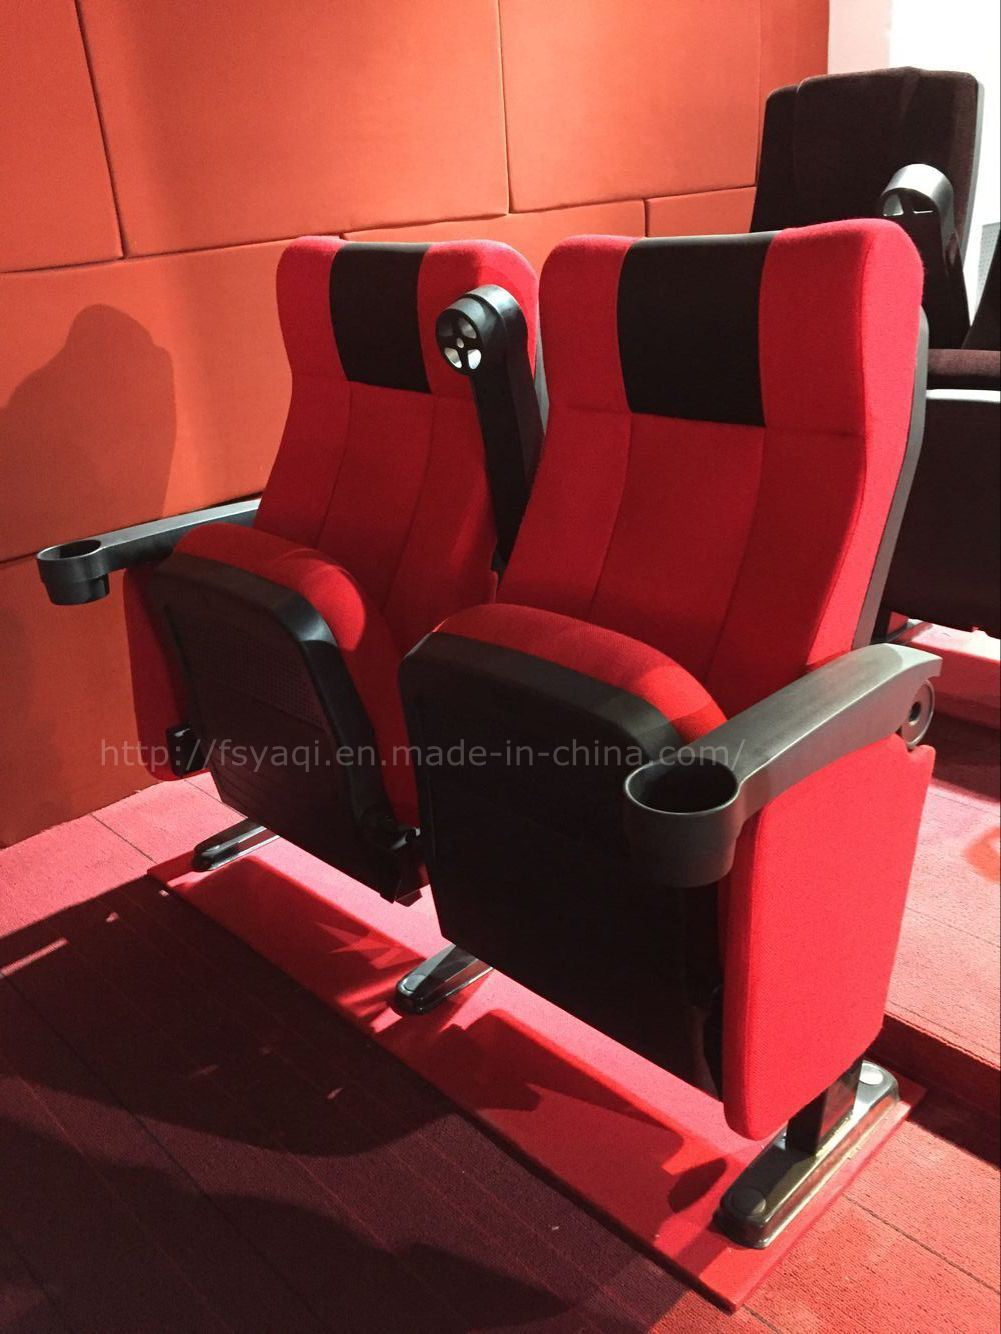 Factory Sale Theater Seating Cinema Chair with Cup Holder (YA-08C)